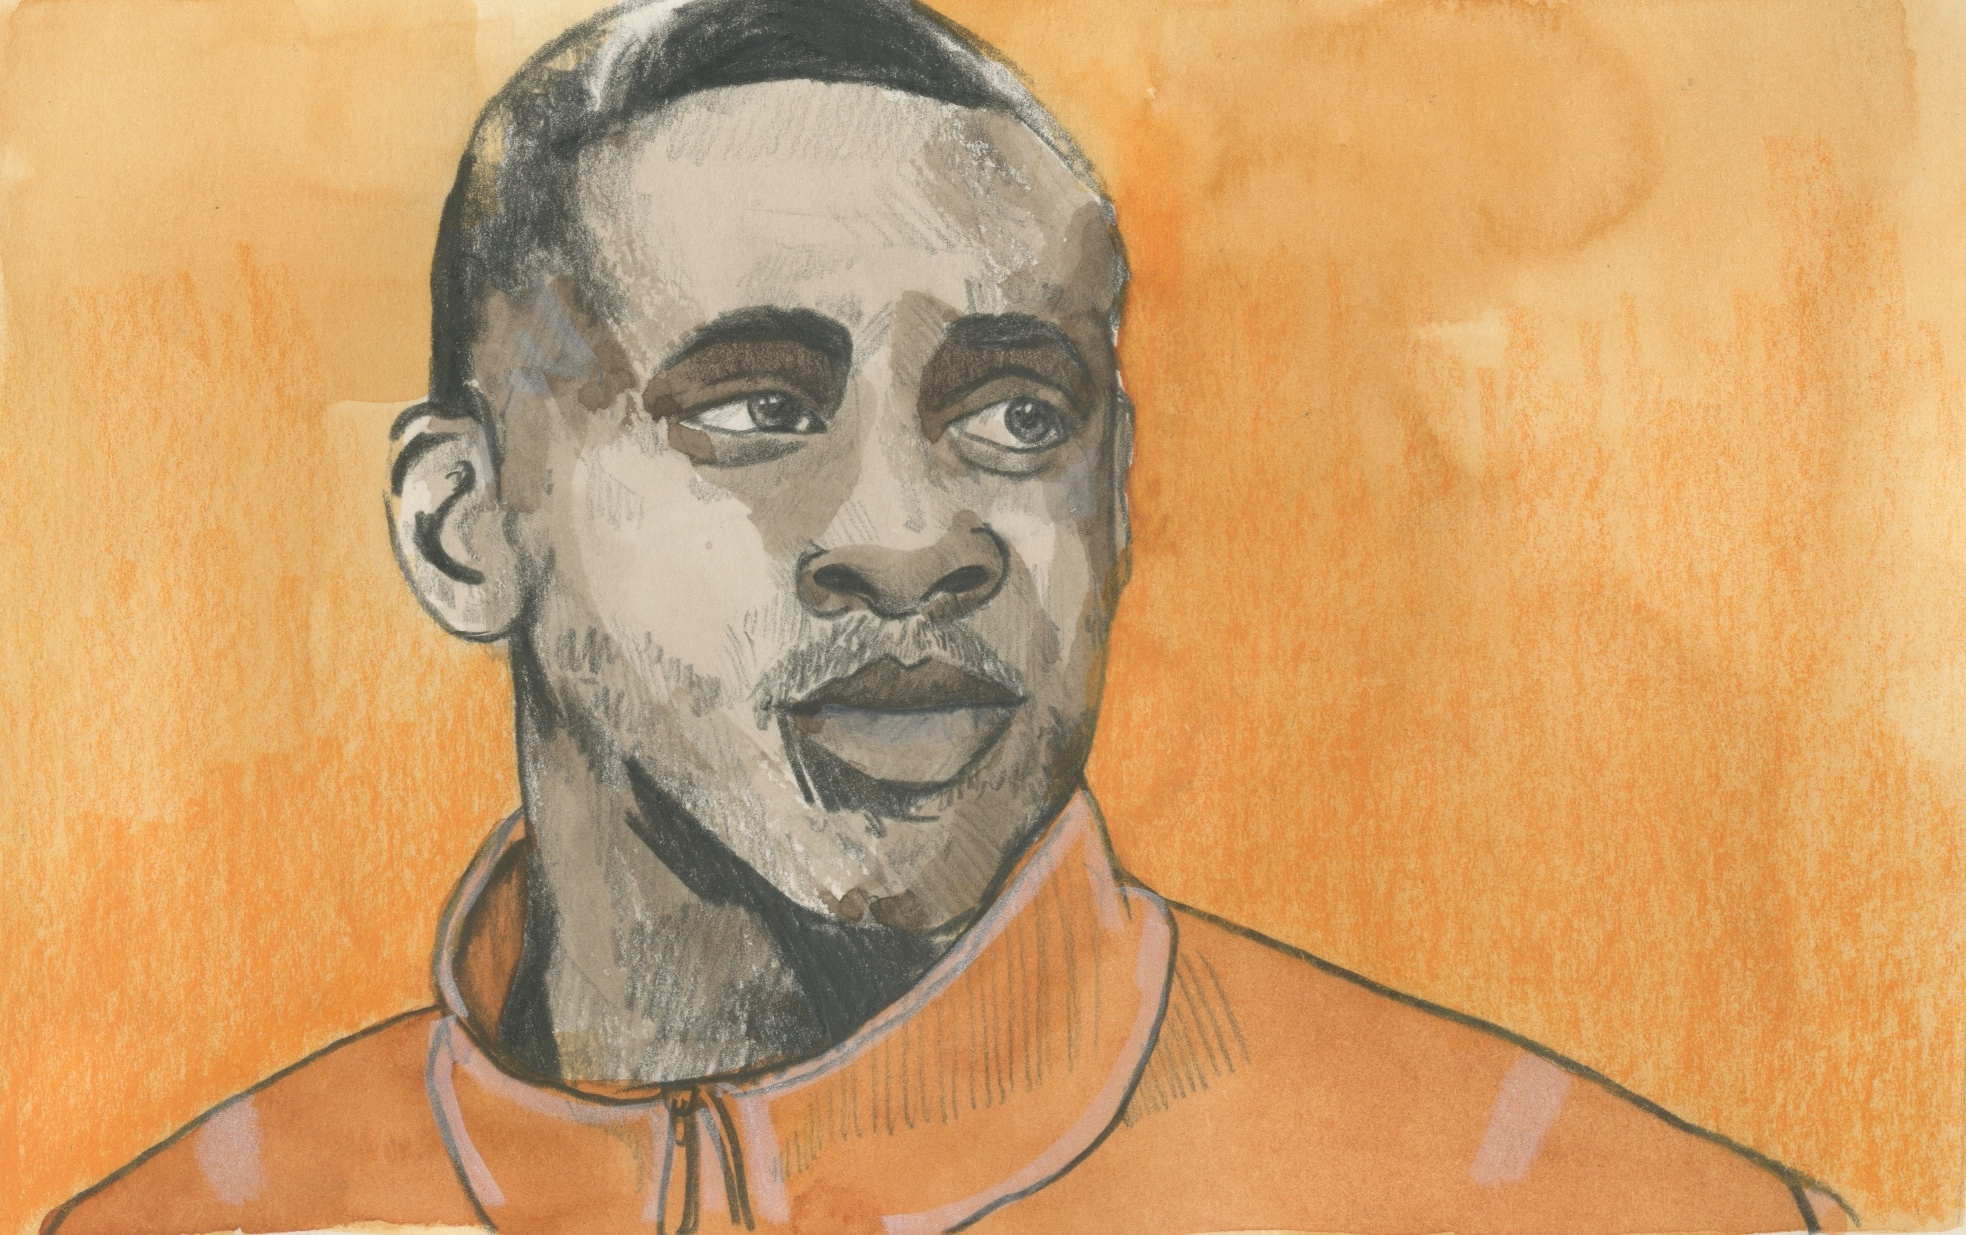 08/02/15 Yaya Toure, captain of Ivory Coast which won the Africa Nations Cup in a dramatic penalty shoot out with Ghana